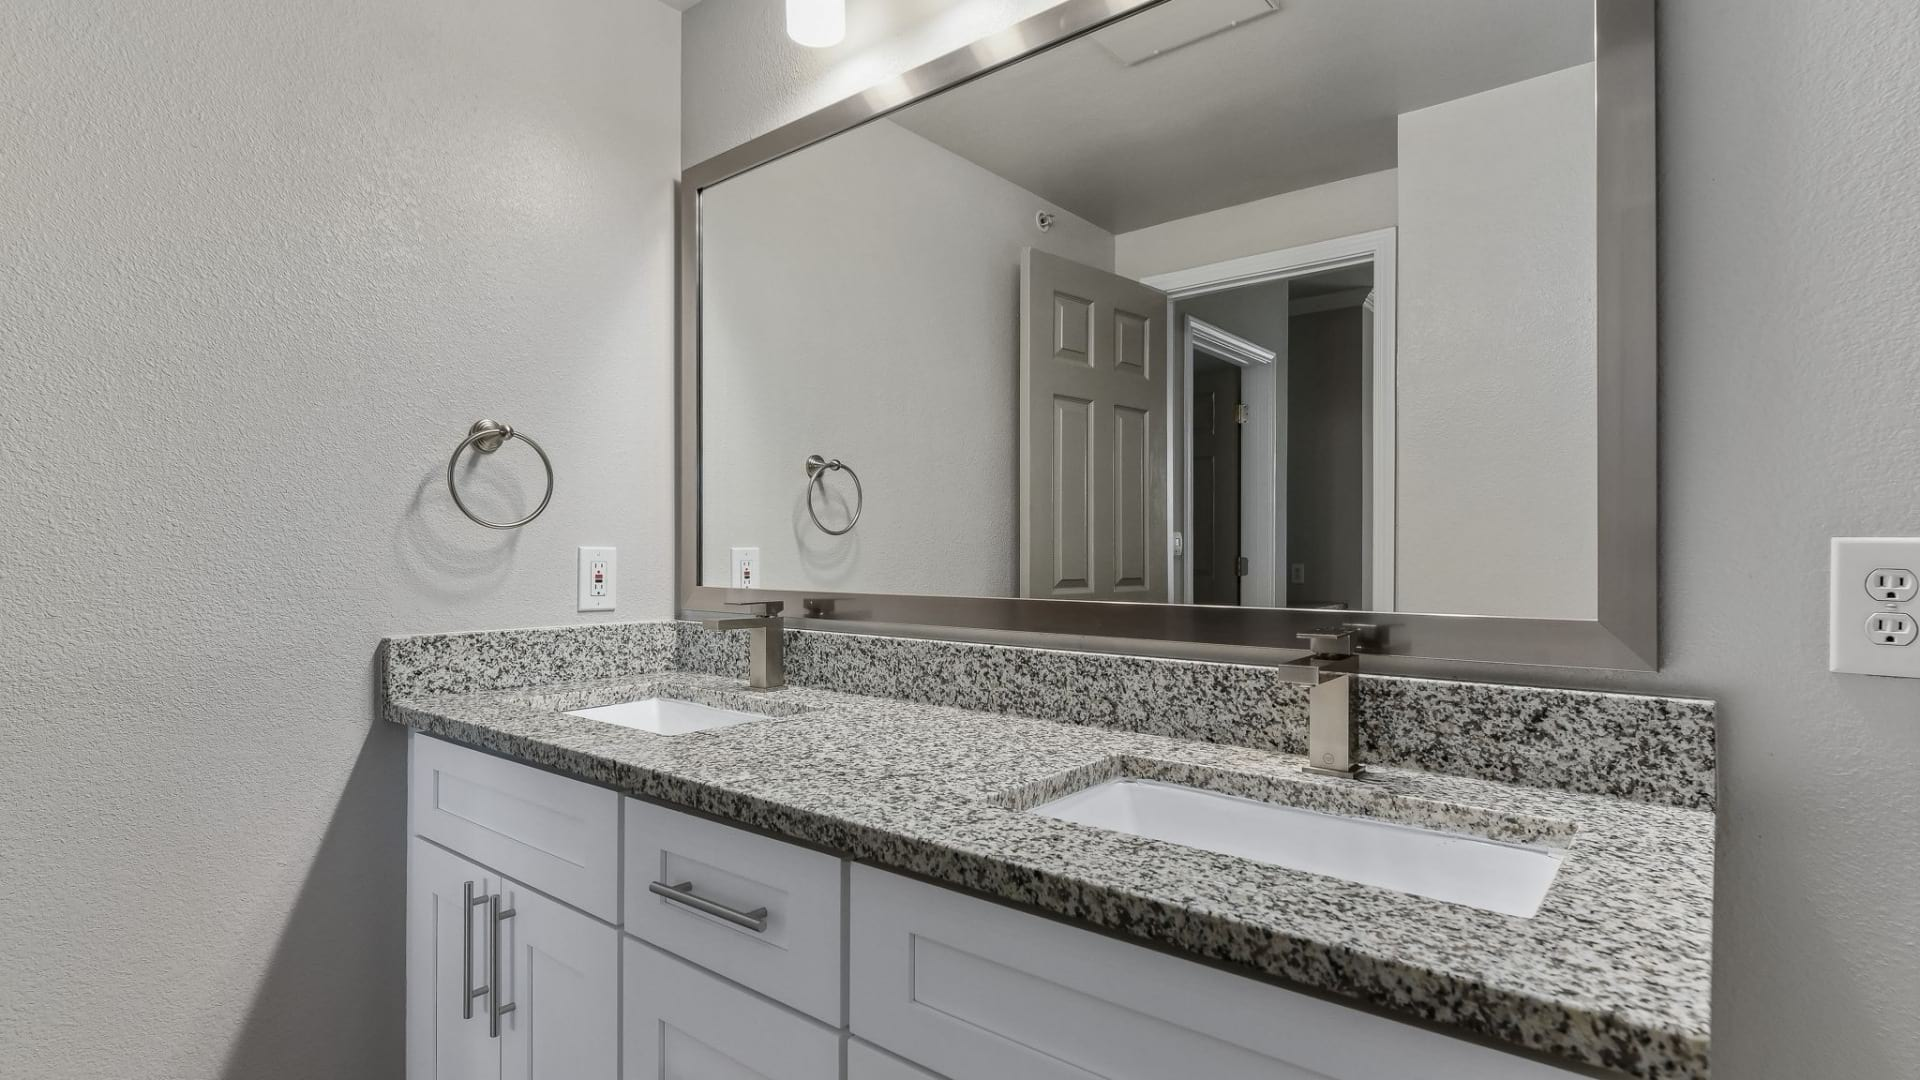 Spacious 1 bedroom apartments for rent in Euless, TX